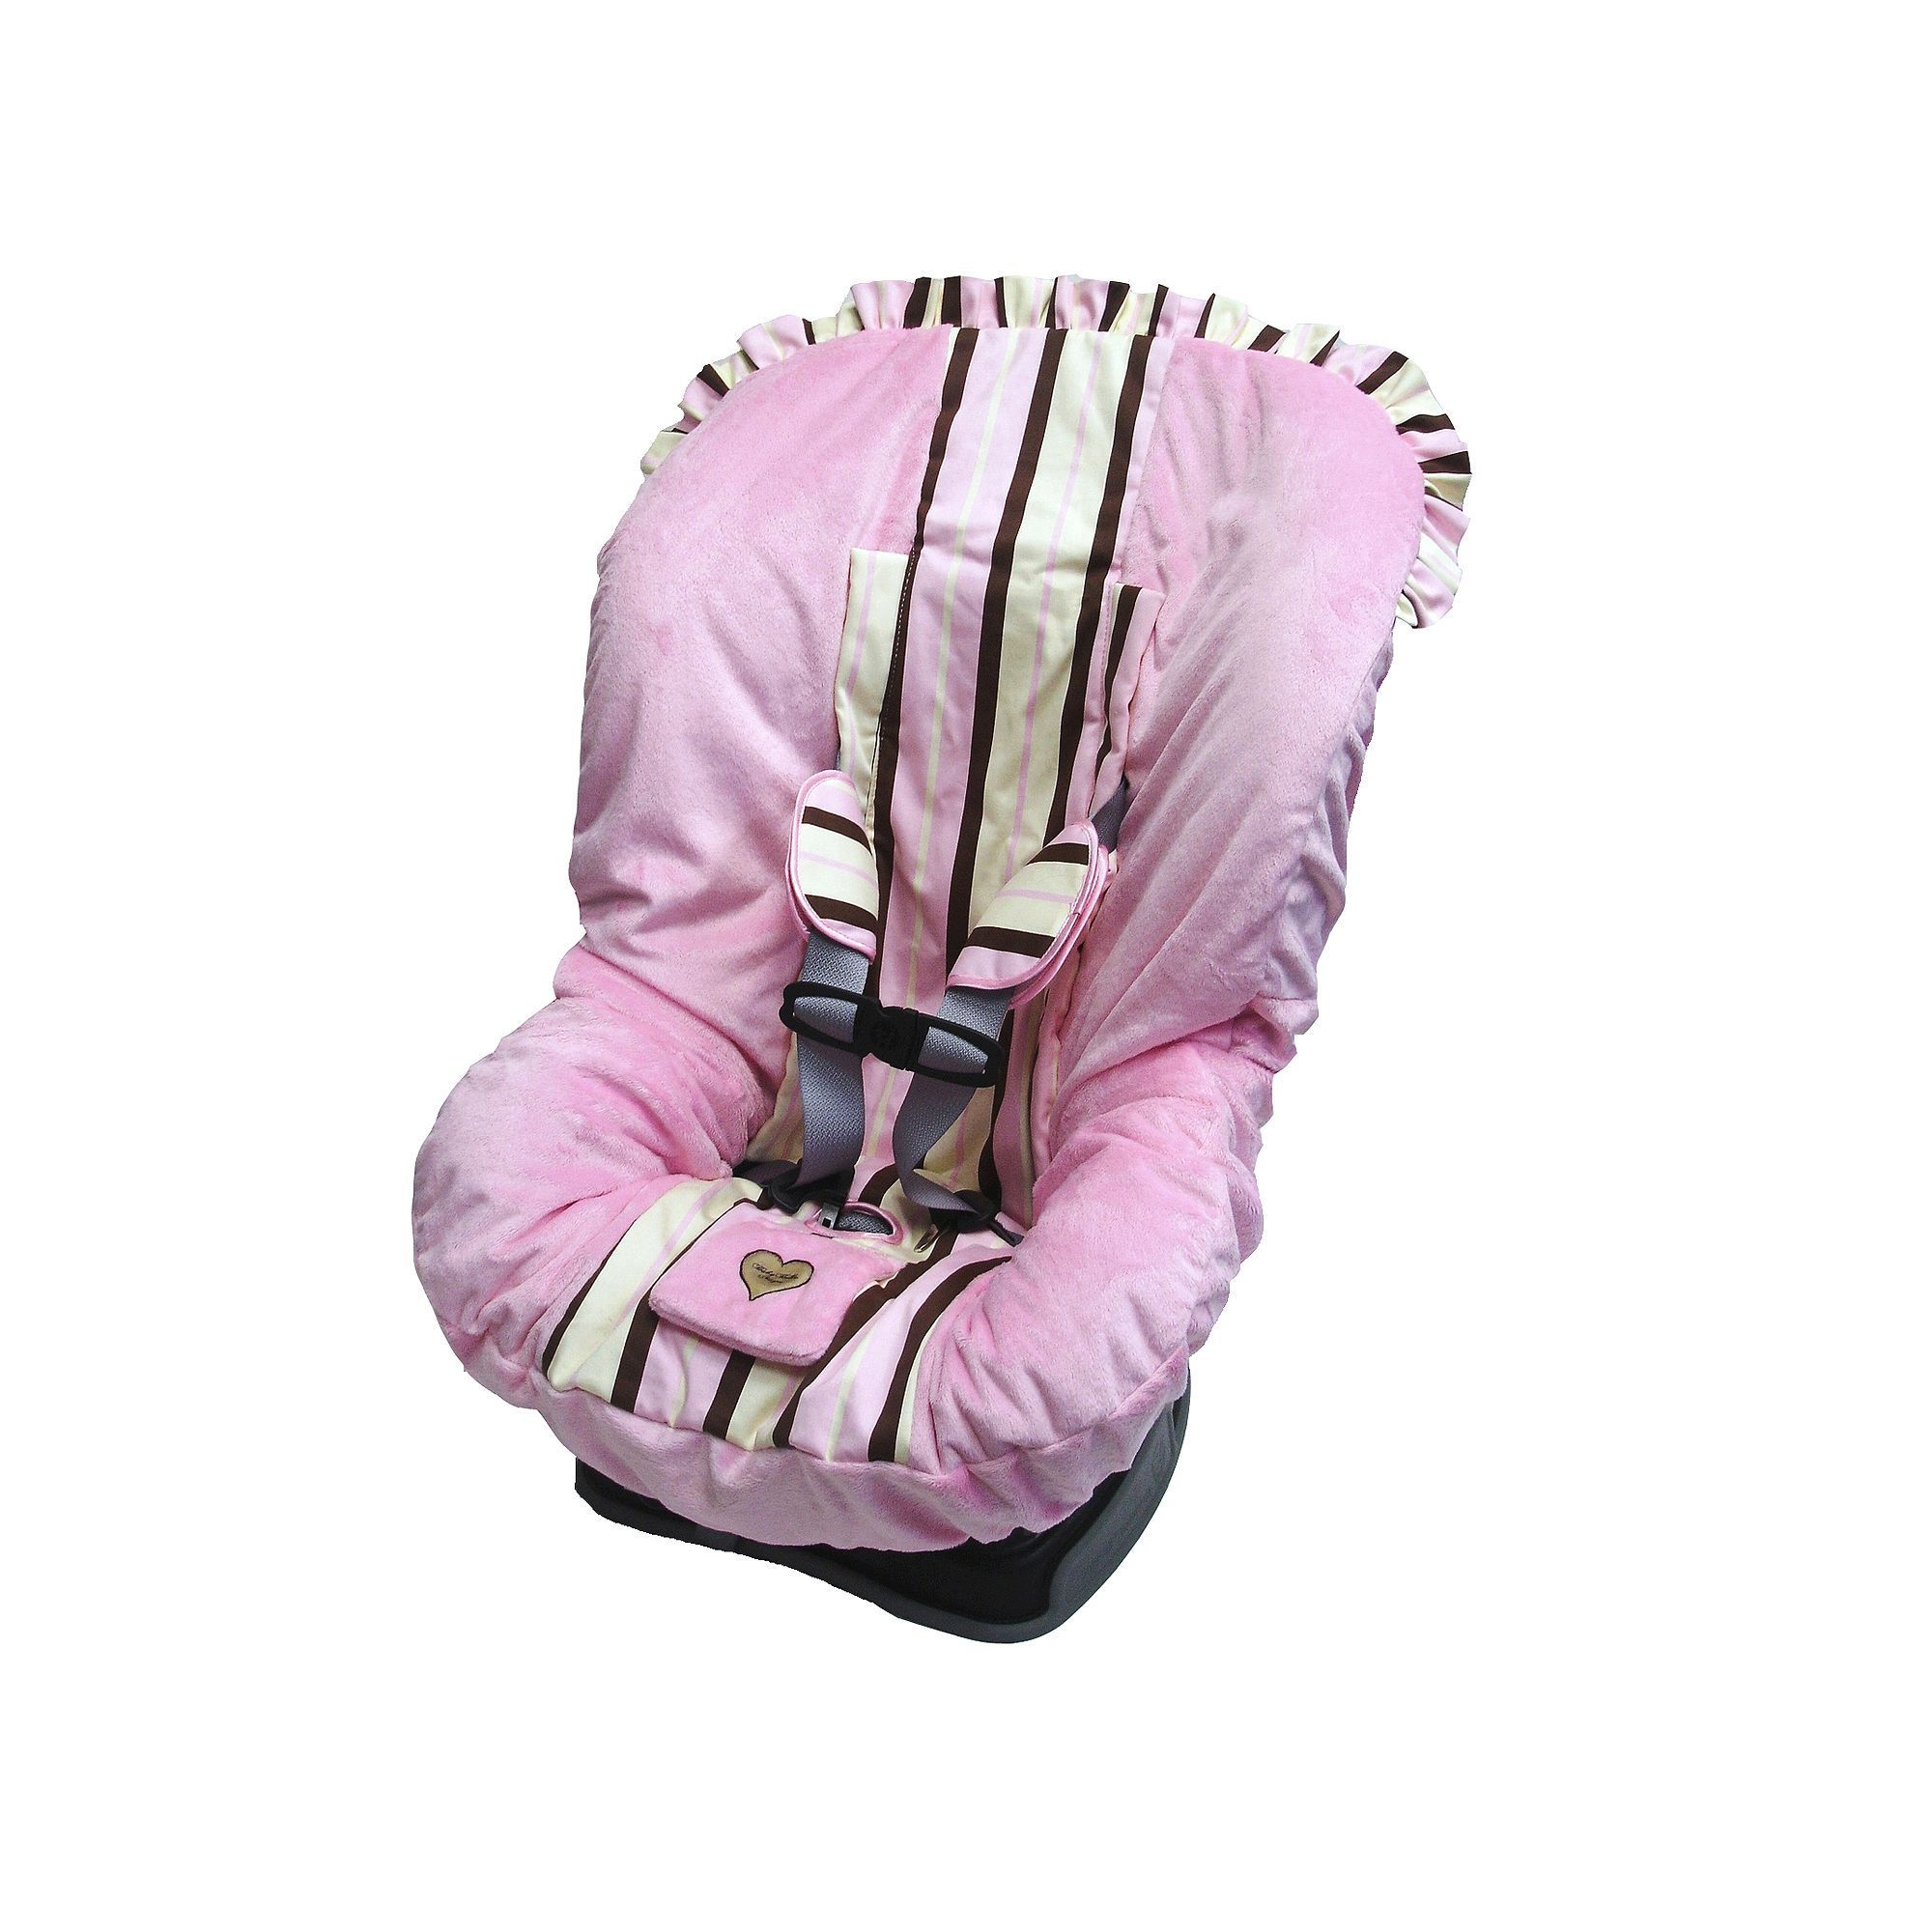 Baby Bella Maya Pixie Stix Toddler Car Seat Cover, Pink | Pixy stix